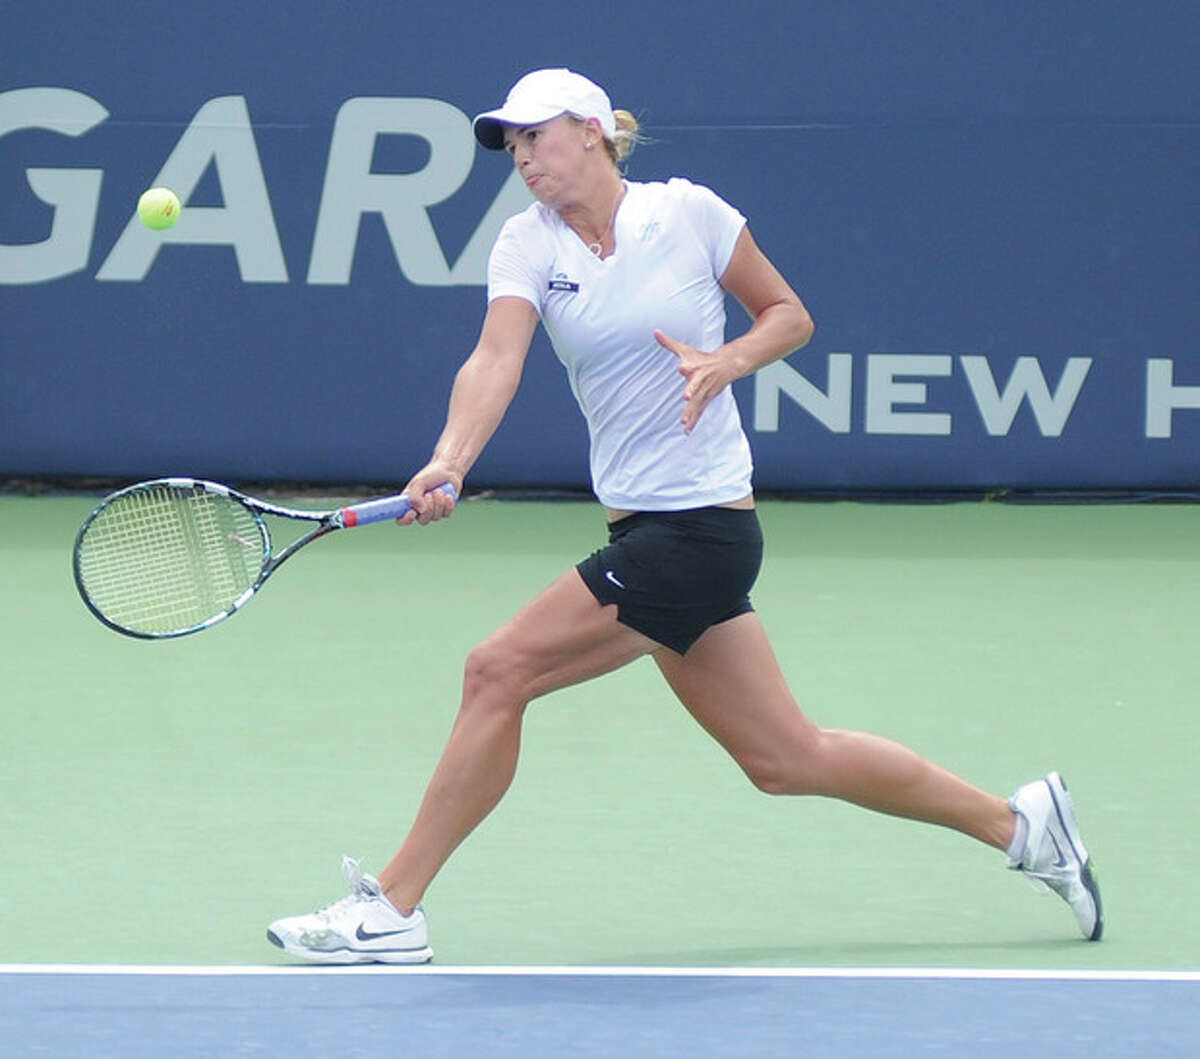 Hour photo/John Nash Alexa Glatch tracks down a forehand return during her third round qualifying match against Melanie Oudin on Sunday. Glatch notched a 6-0, 6-2 win to make the main draw at the New Haven Open.